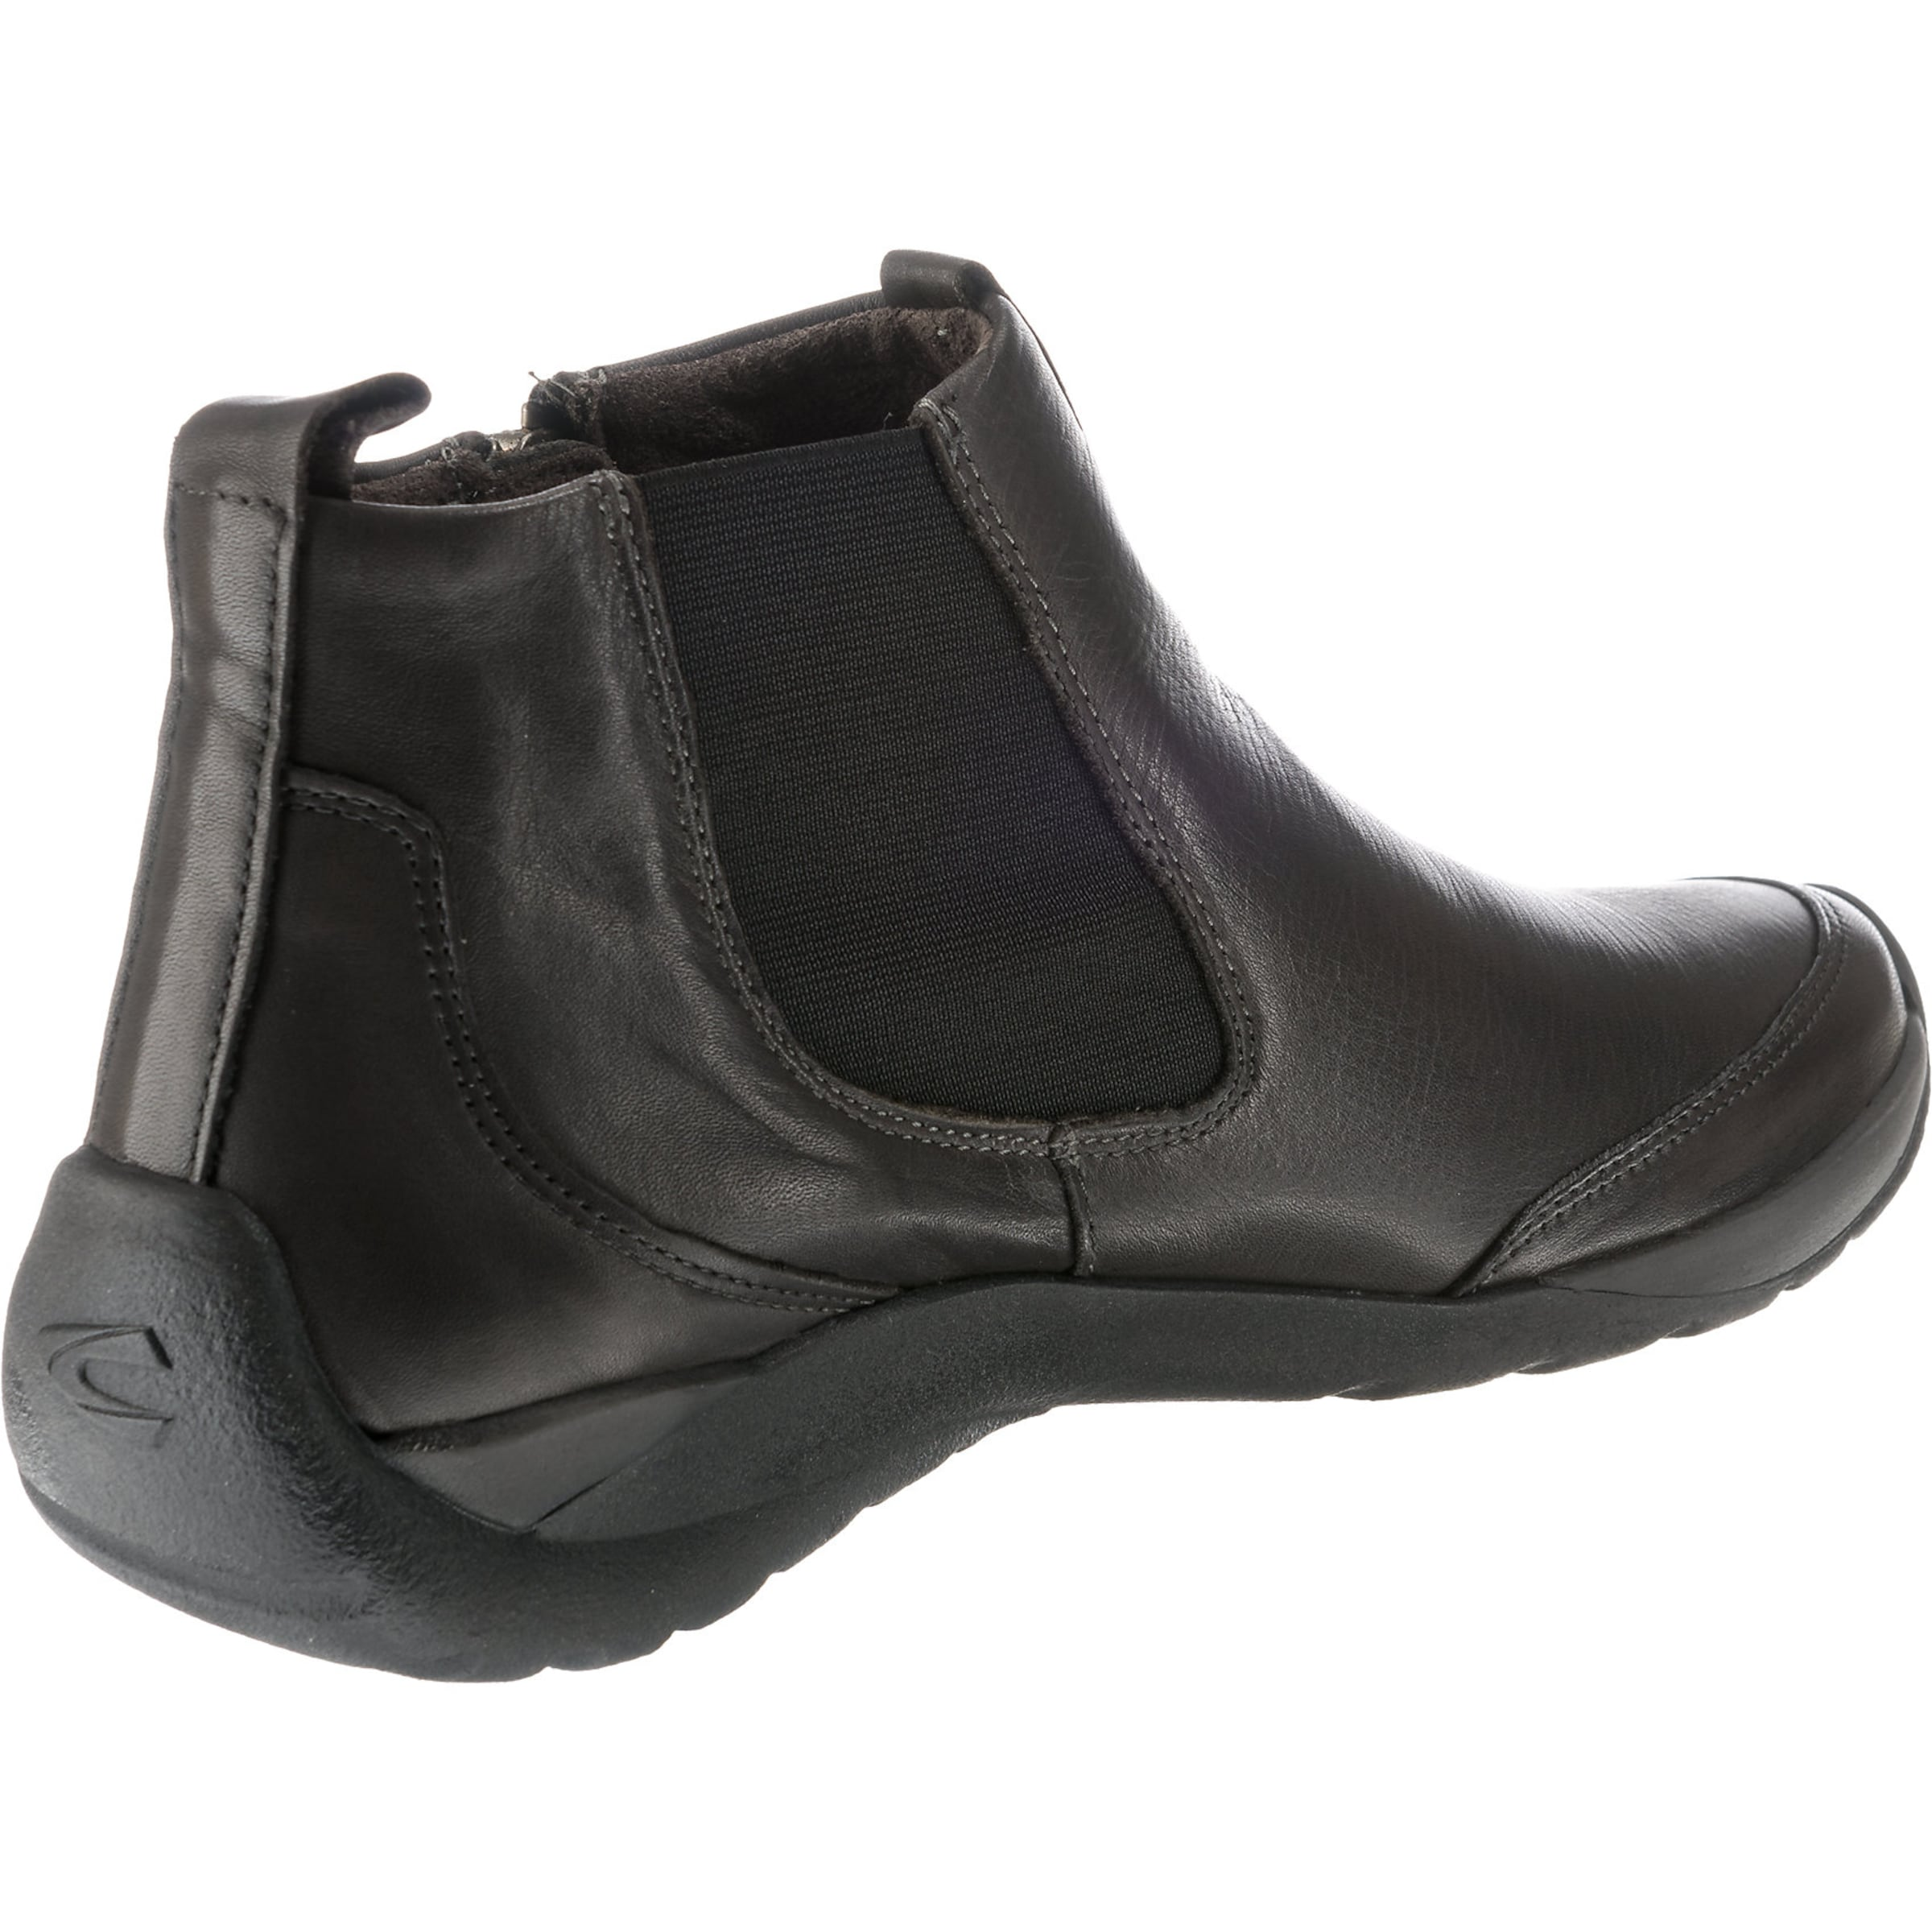 Camel Active Chelsea 'moonlight Schwarz In Boots 78' yIgmbf67Yv